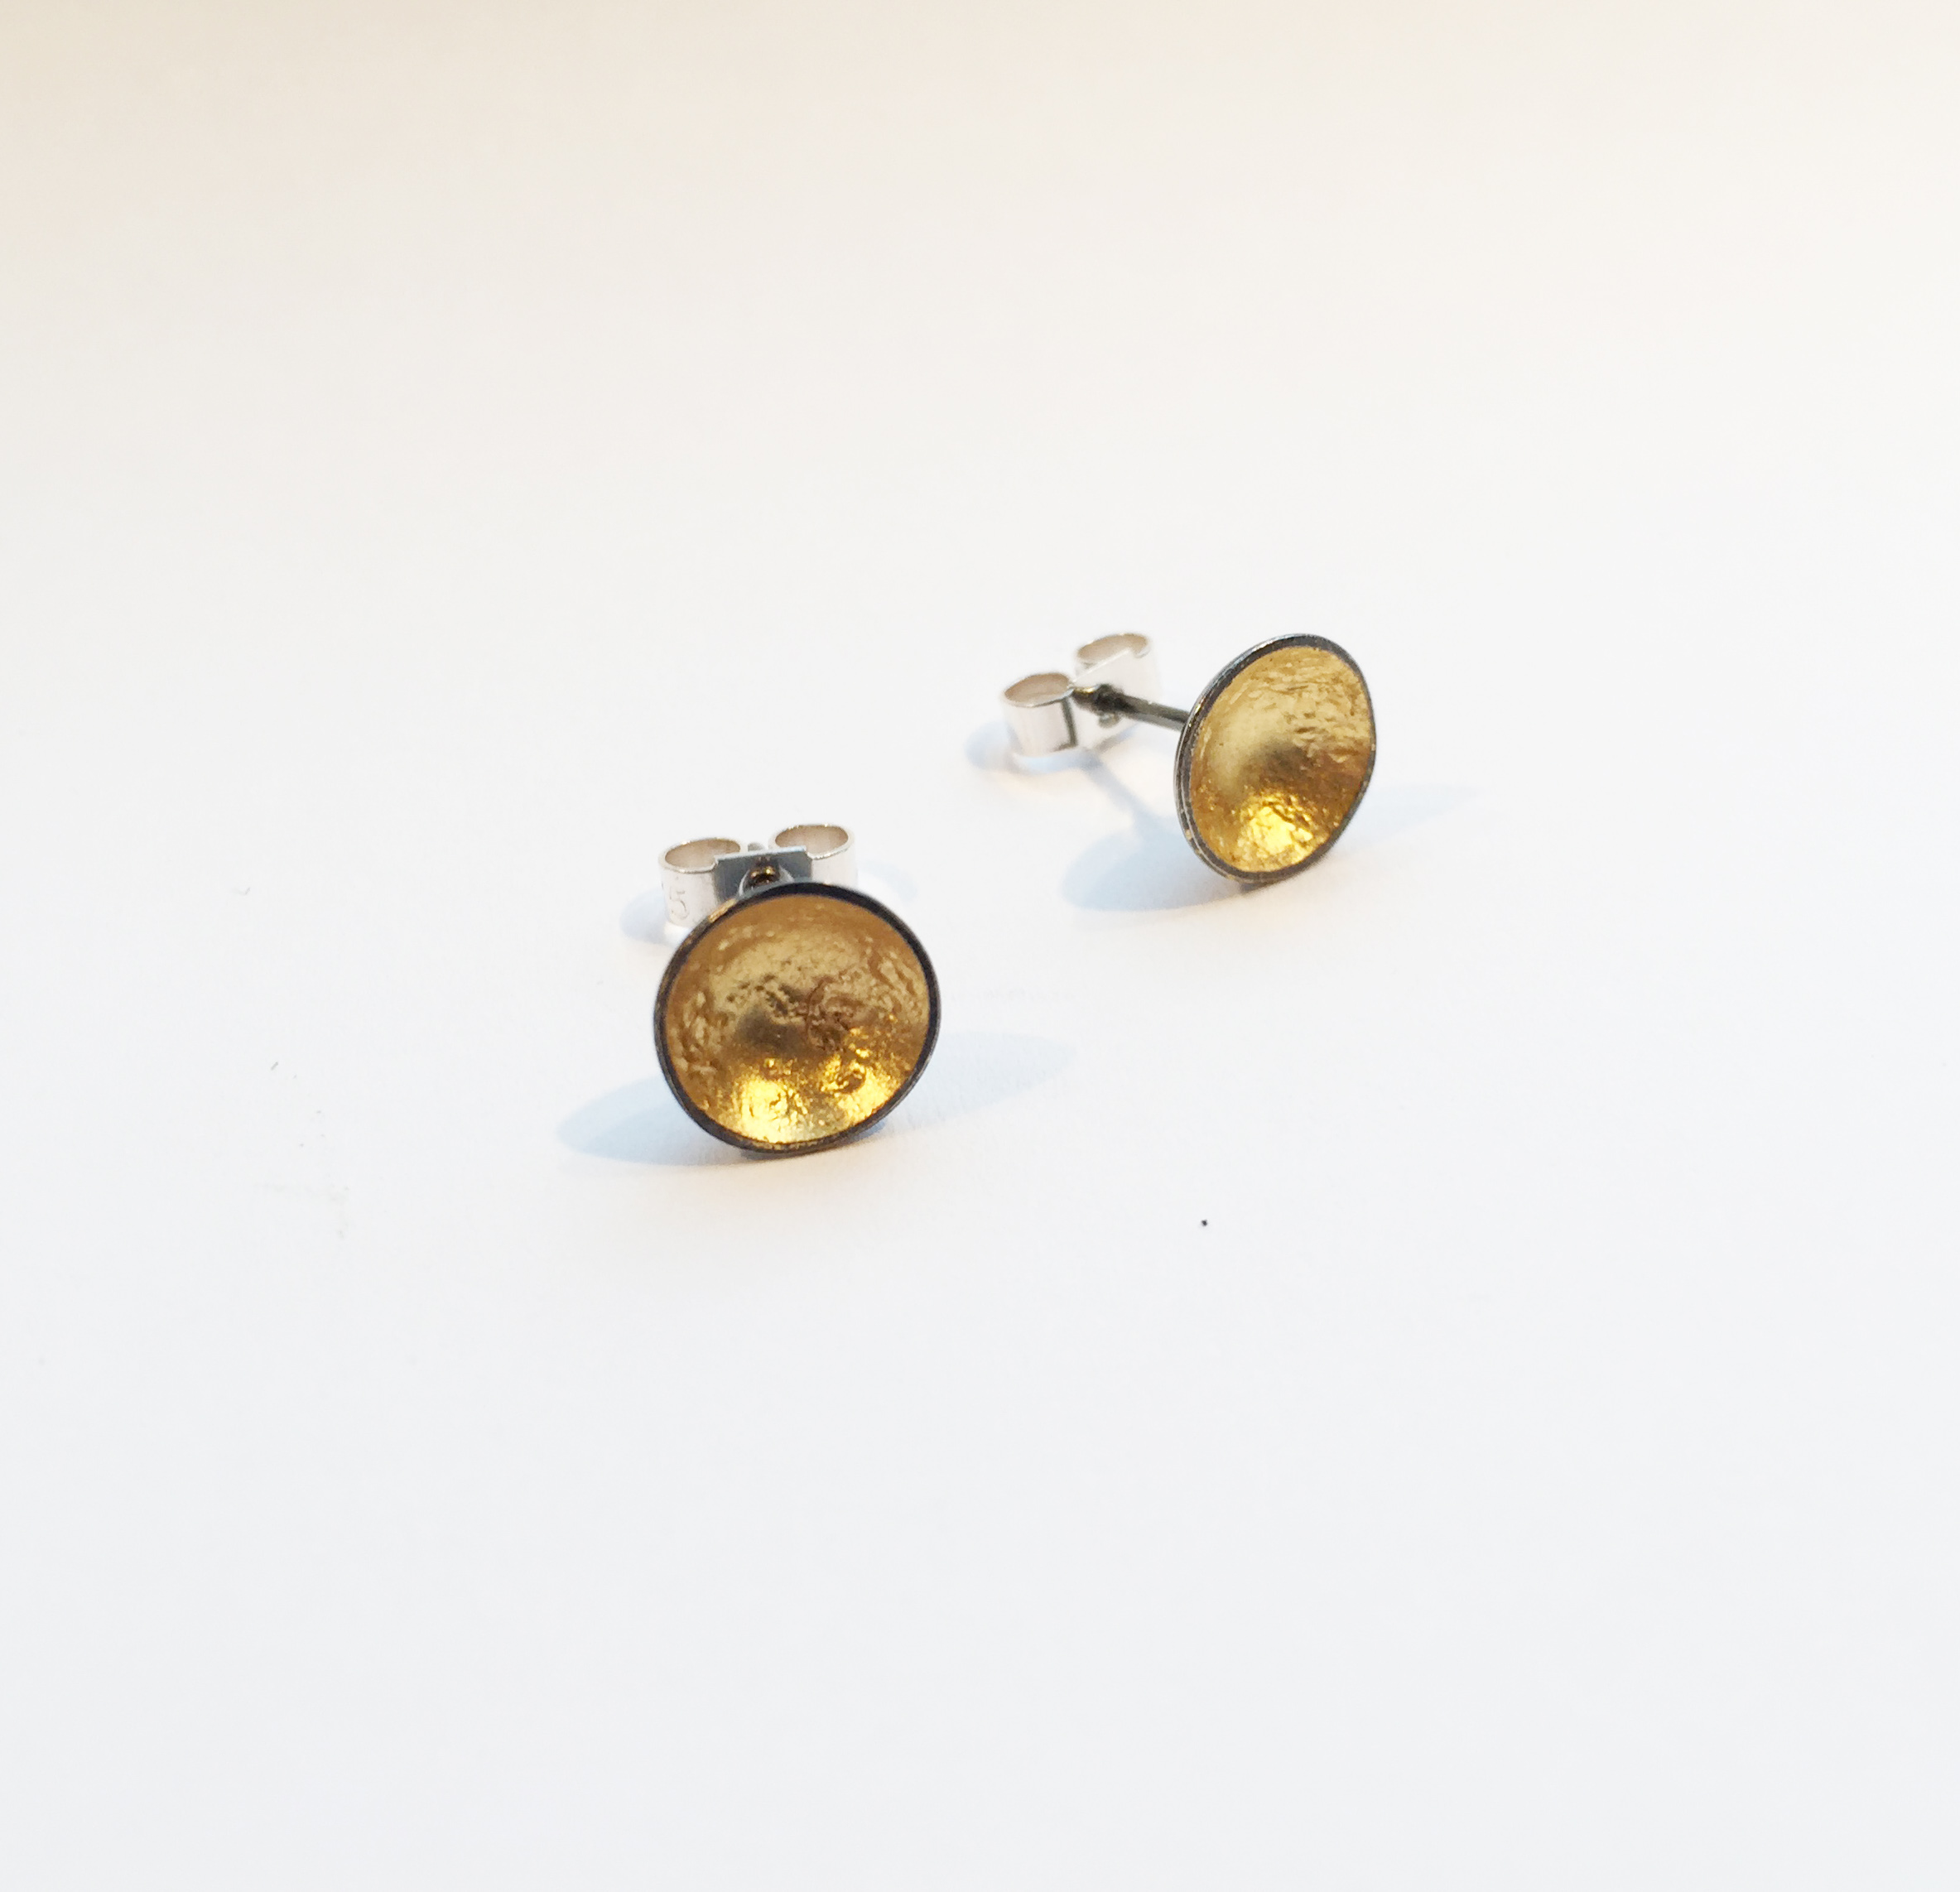 Oxidised silver and gold leaf earring studs by Karen Parker